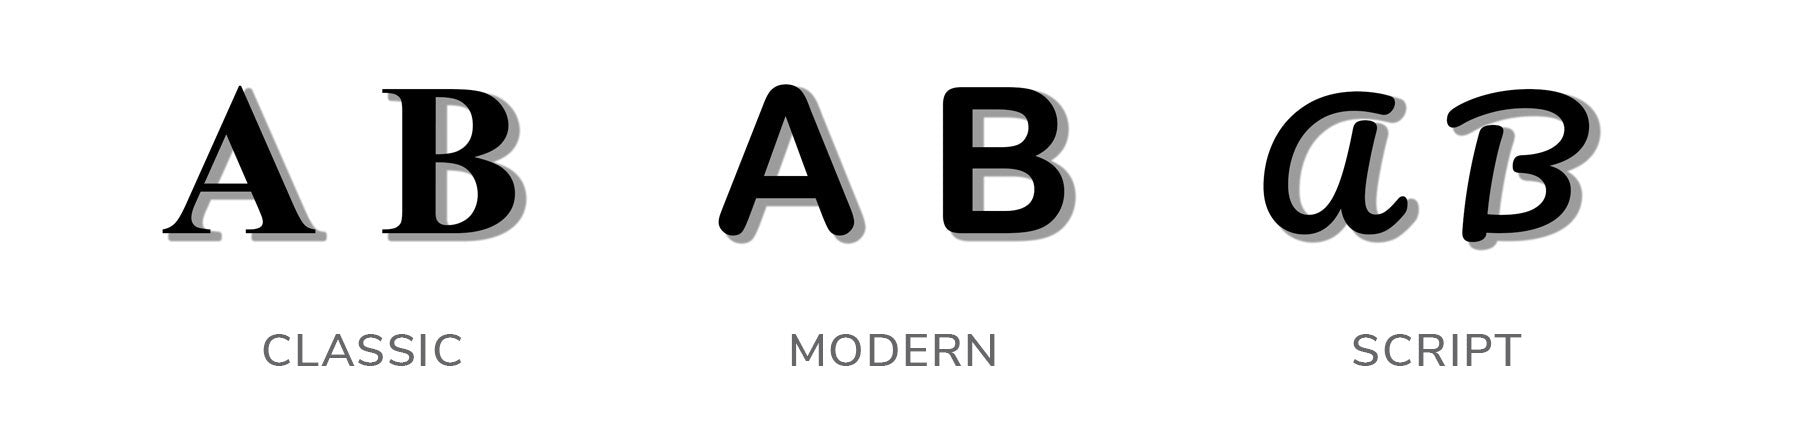 Choose your font: Classic, Modern or Script